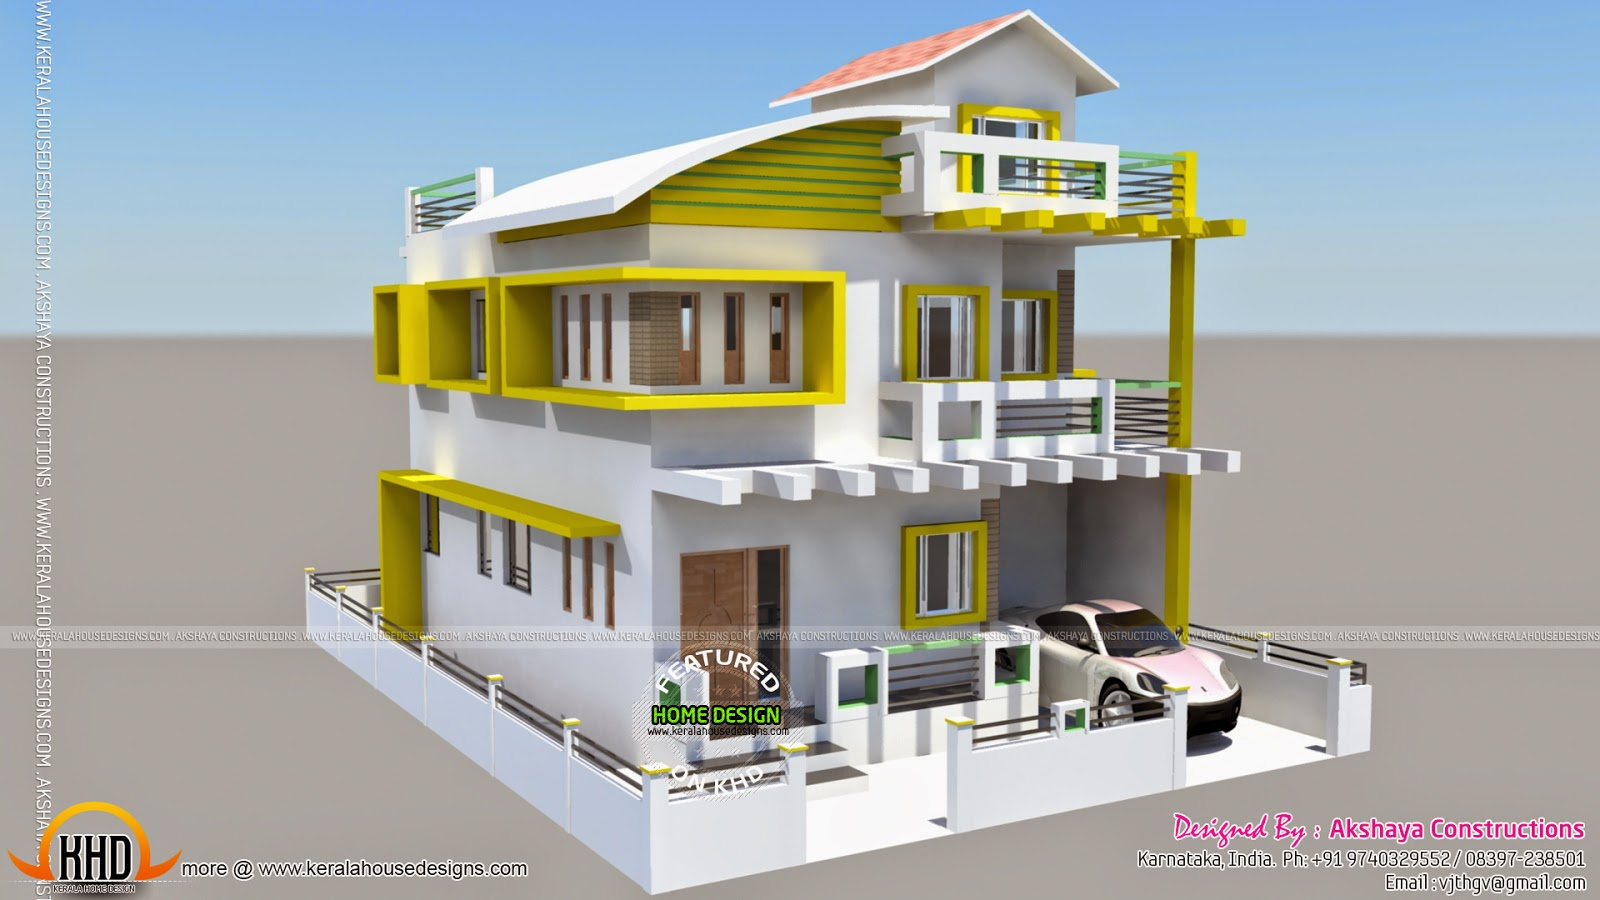 Karnataka home design kerala home design and floor plans for Home design front side